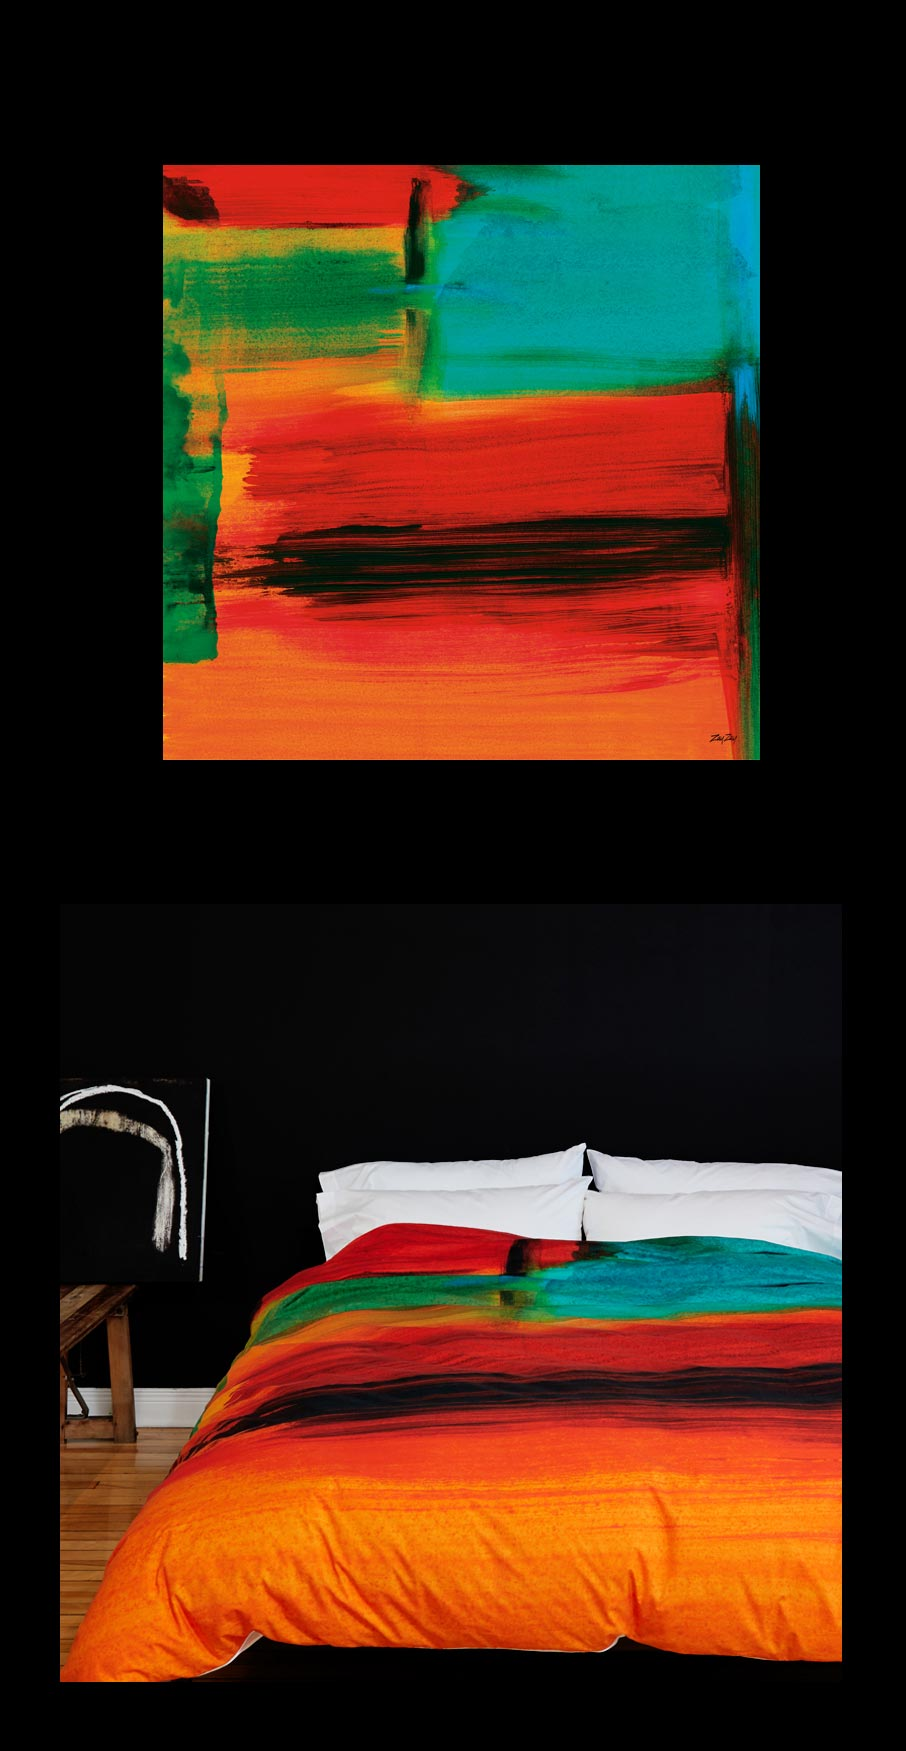 ZayZay painting African Sunset on wall with duvet cover design on bed